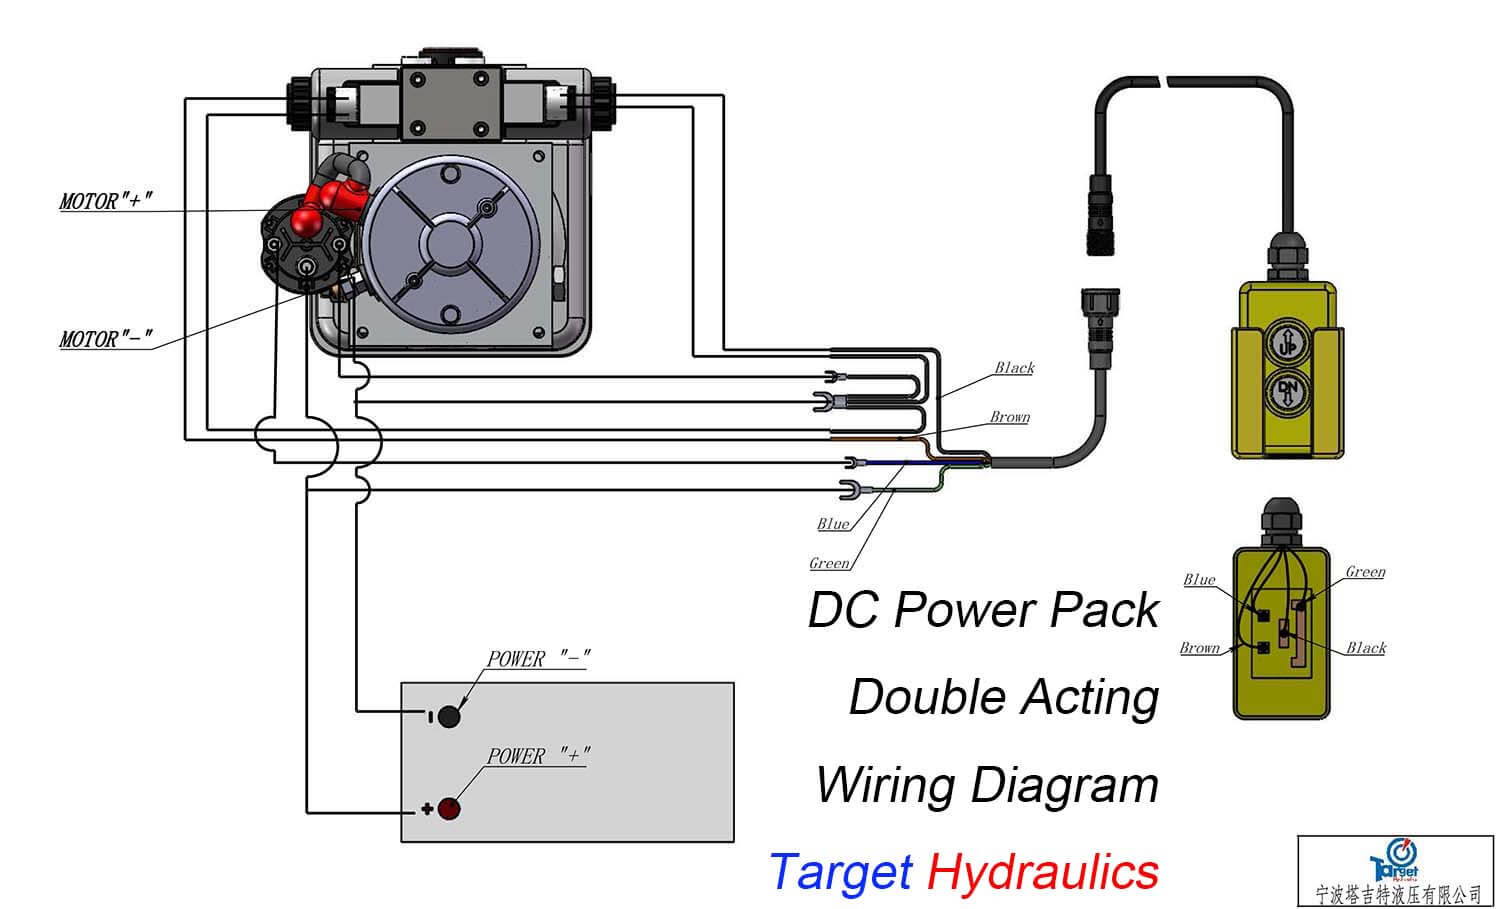 How to Wire Hydraulic Power Pack,Power Unit Diagram Design | Hydraulic Motor Wiring Diagram |  | Target Hydraulics